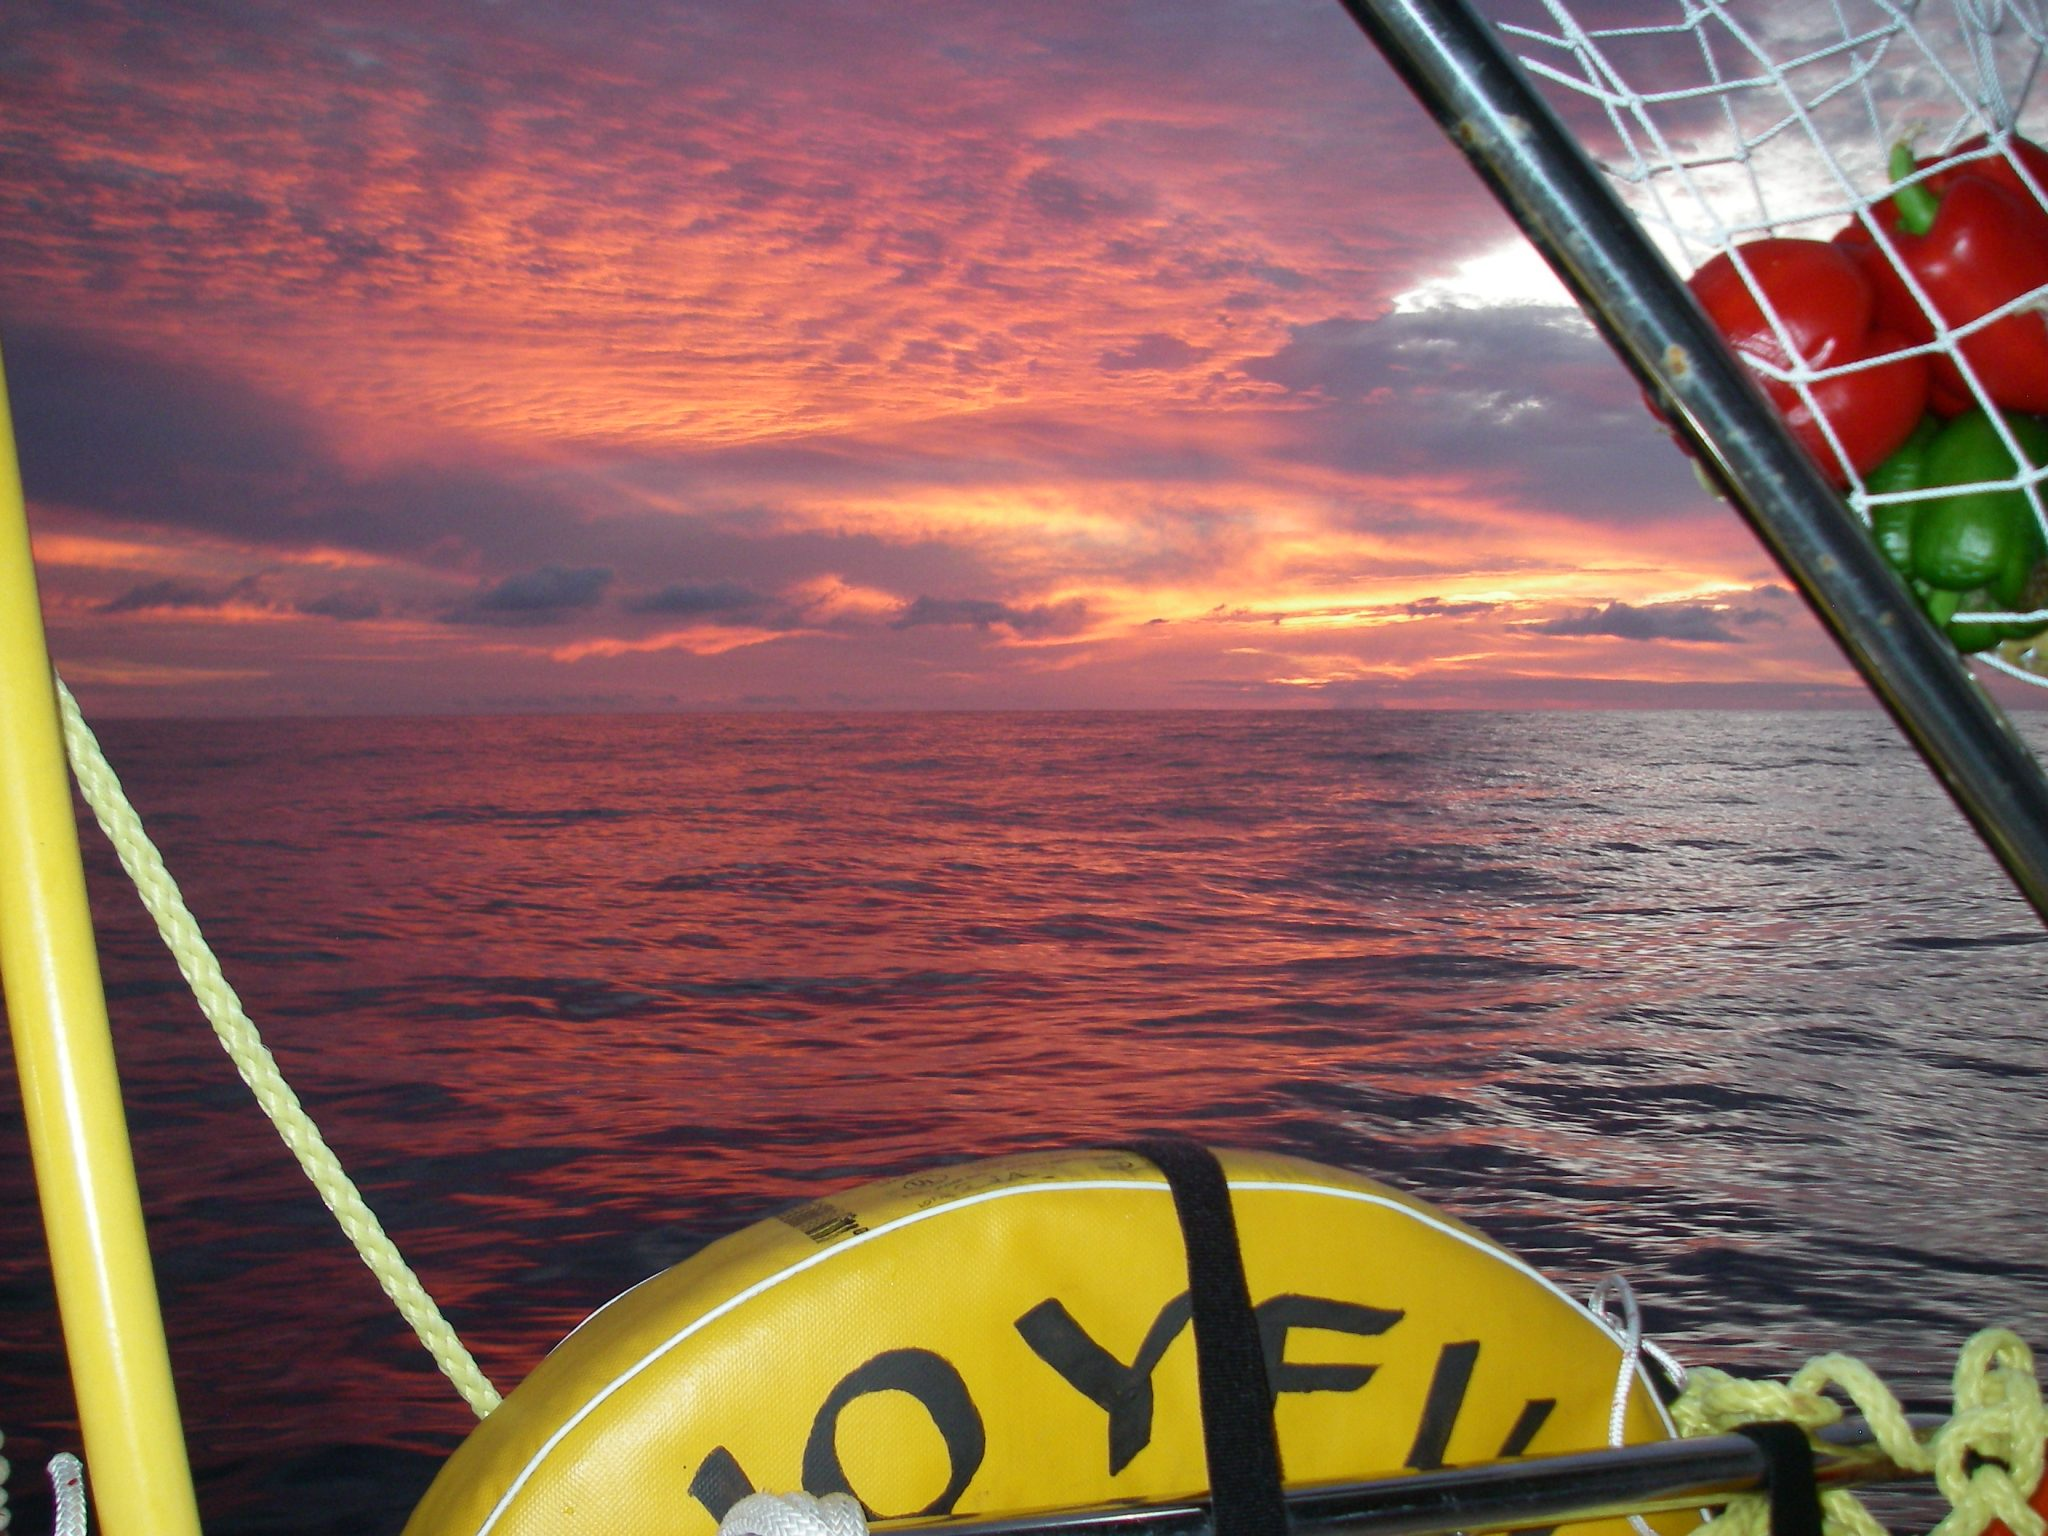 67. Joyful with a magnificent sunrise off the East coast of Australia